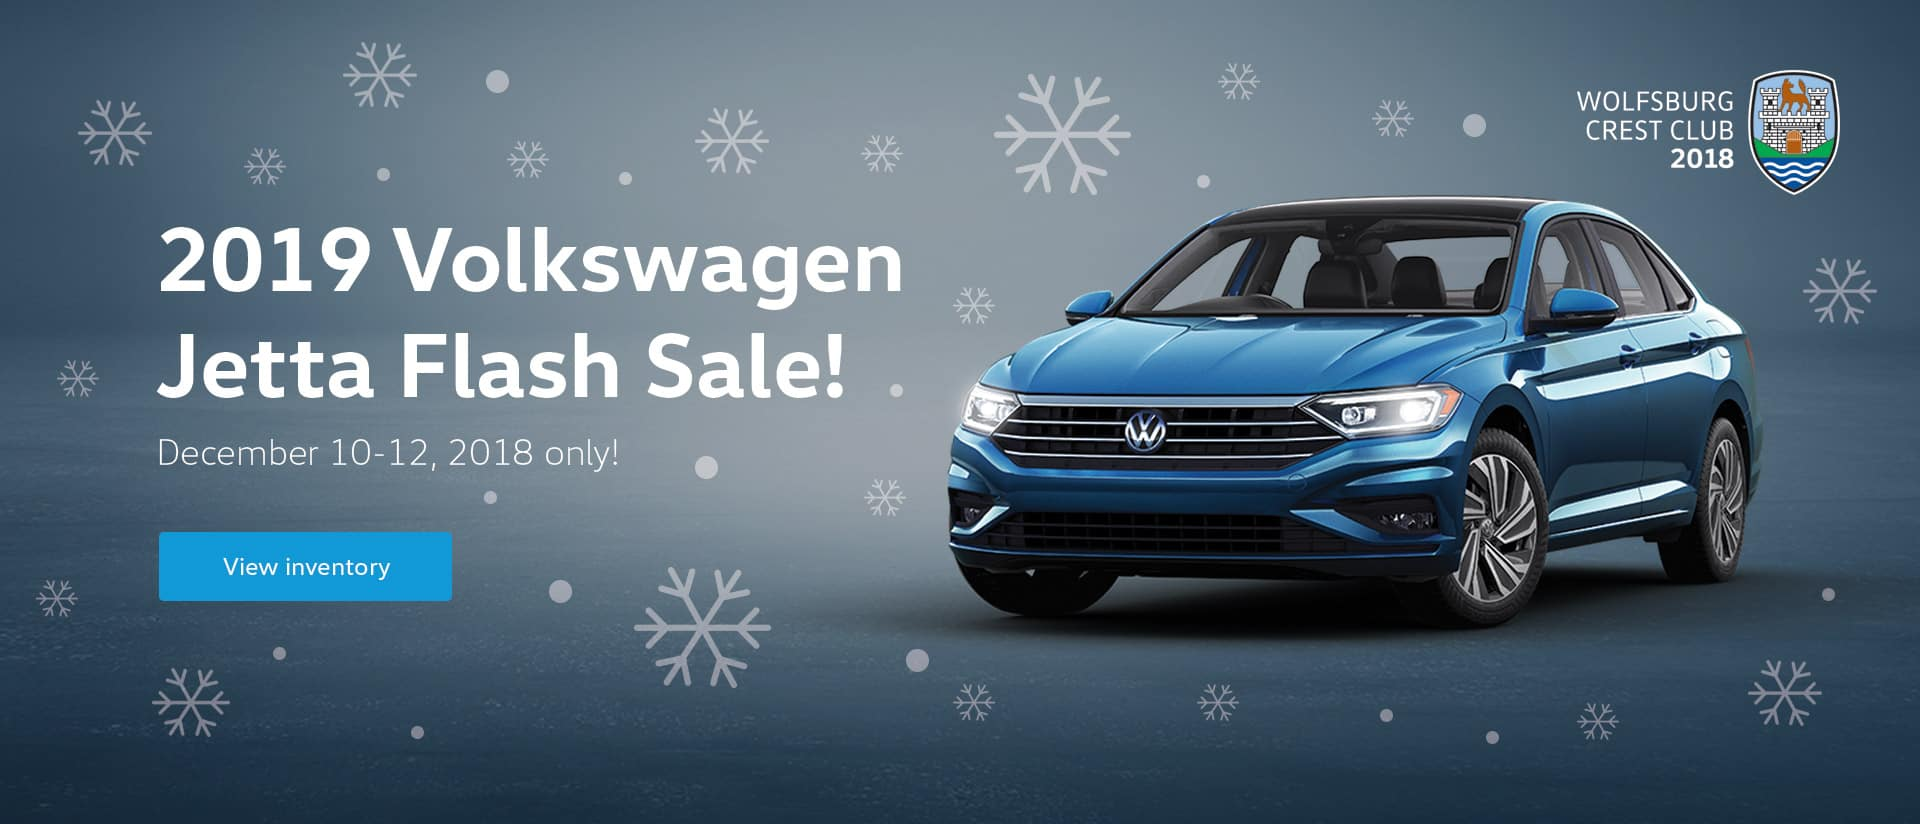 Jetta Flash Sale